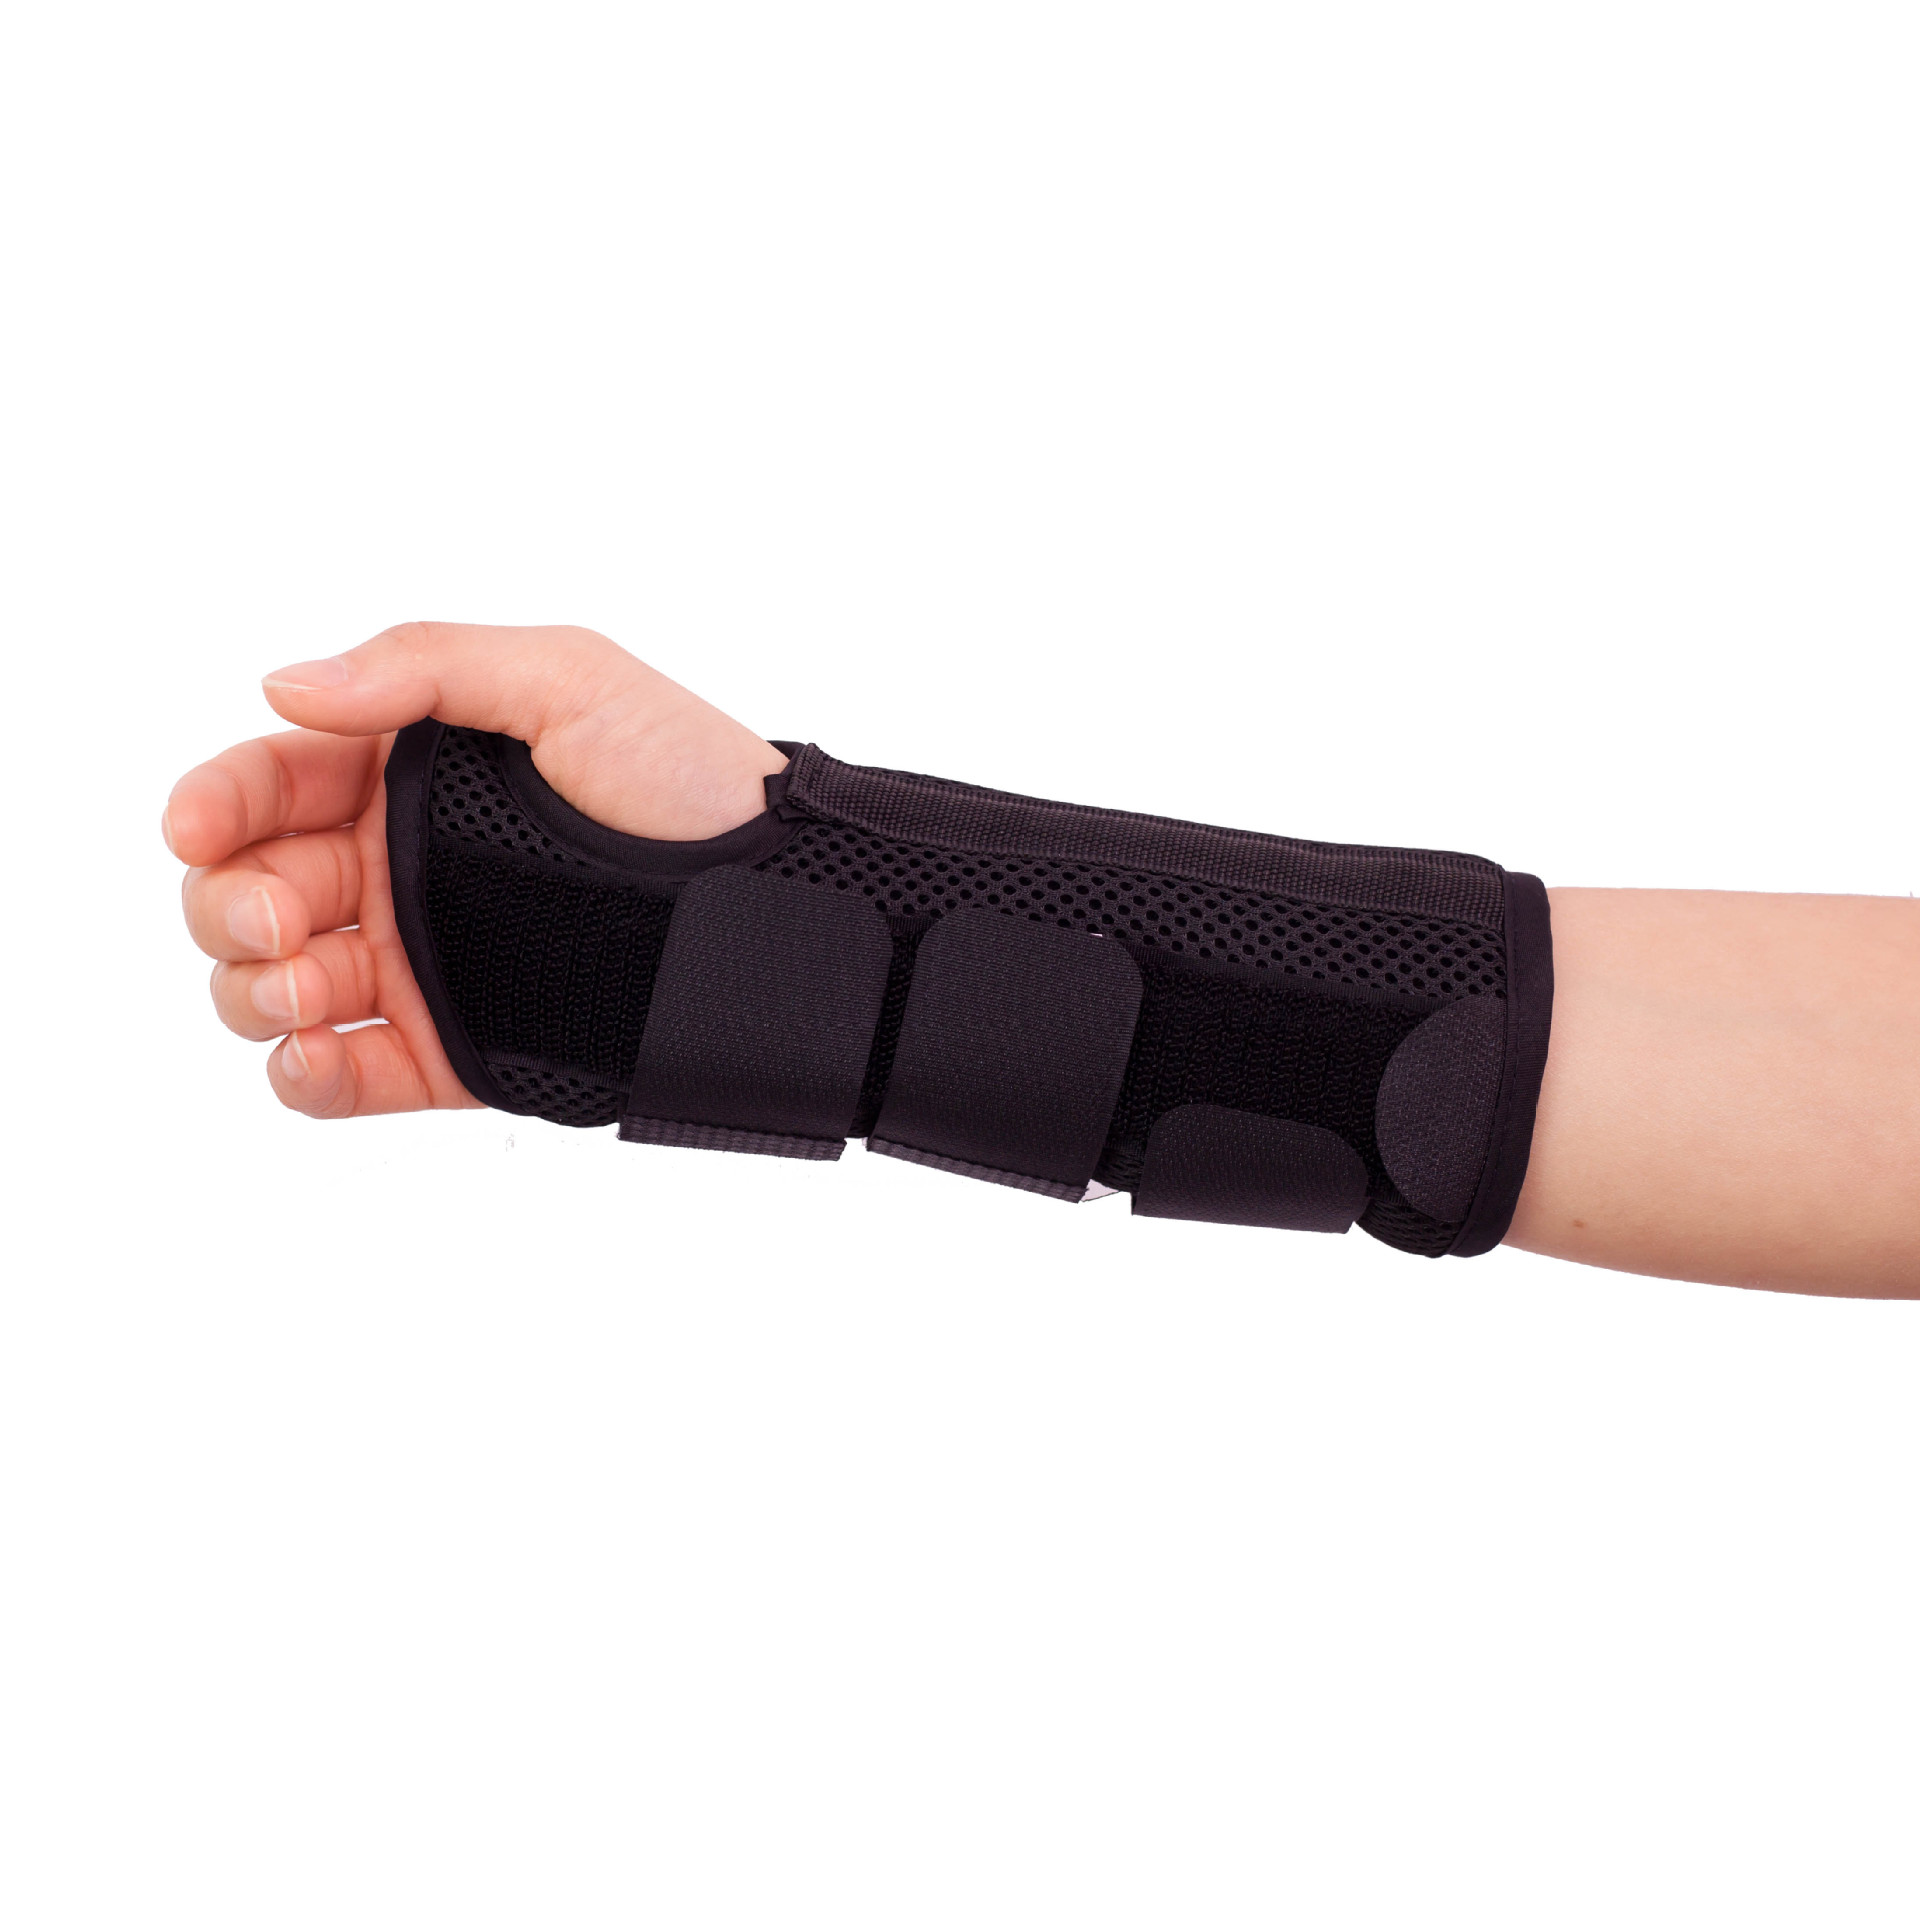 Breathable Wrist Fracture Fixing Band Forearm Fracture Postoperative Bracer Protective Clothing Plywood